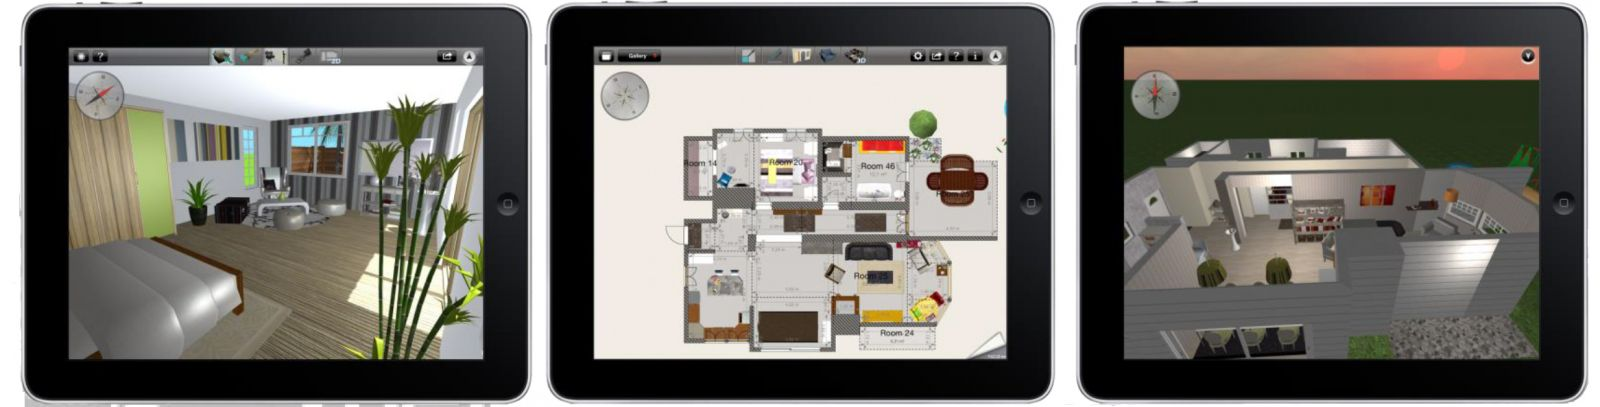 home design application iphone home design and style web application home page design home and landscaping design